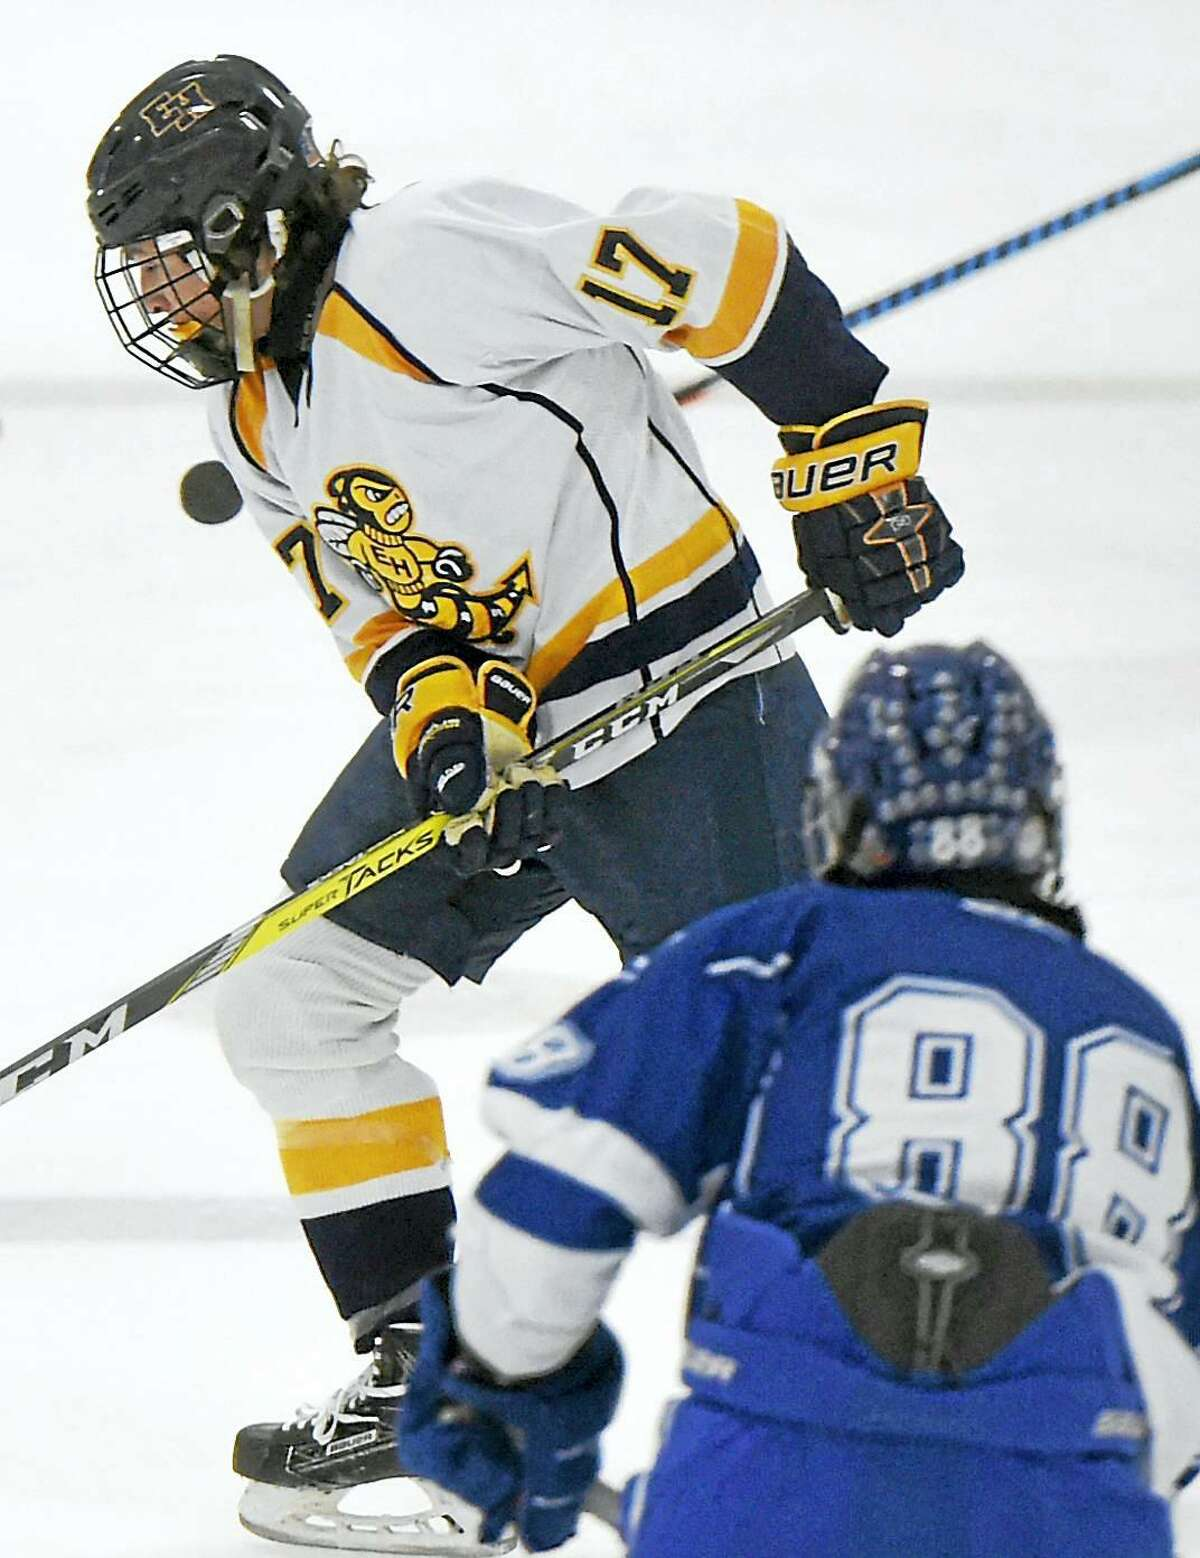 East Haven's Nick Capone, shown during a January 31, 2017 game against West Haven, is expected to be selected in the upcoming NHL draft.